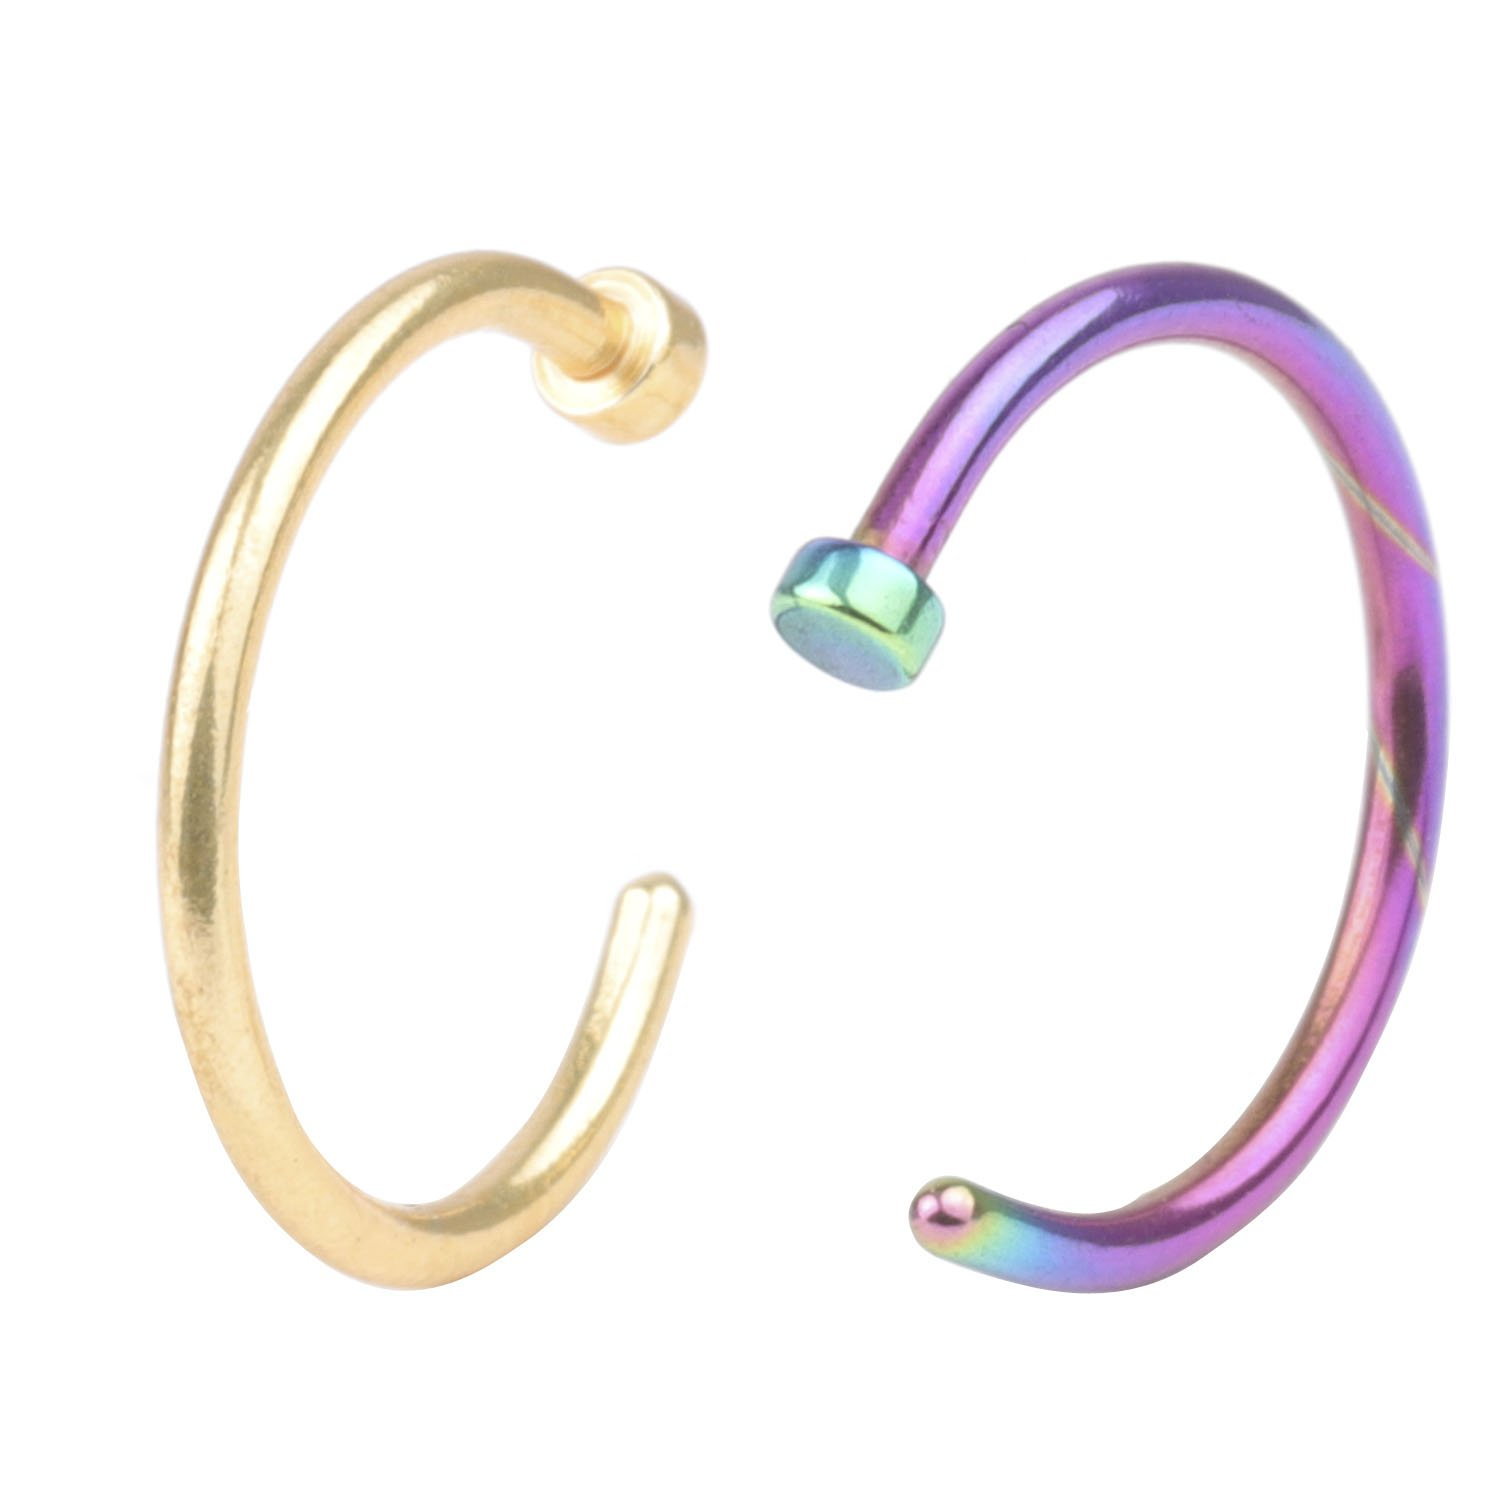 2Pcs 20G 8mm Hot Colorful Stainless Steel Nose Open Hoop Ring Earring Body Piercing Studs Jewelry Set Fashion Piercing Jewelry A+ CM